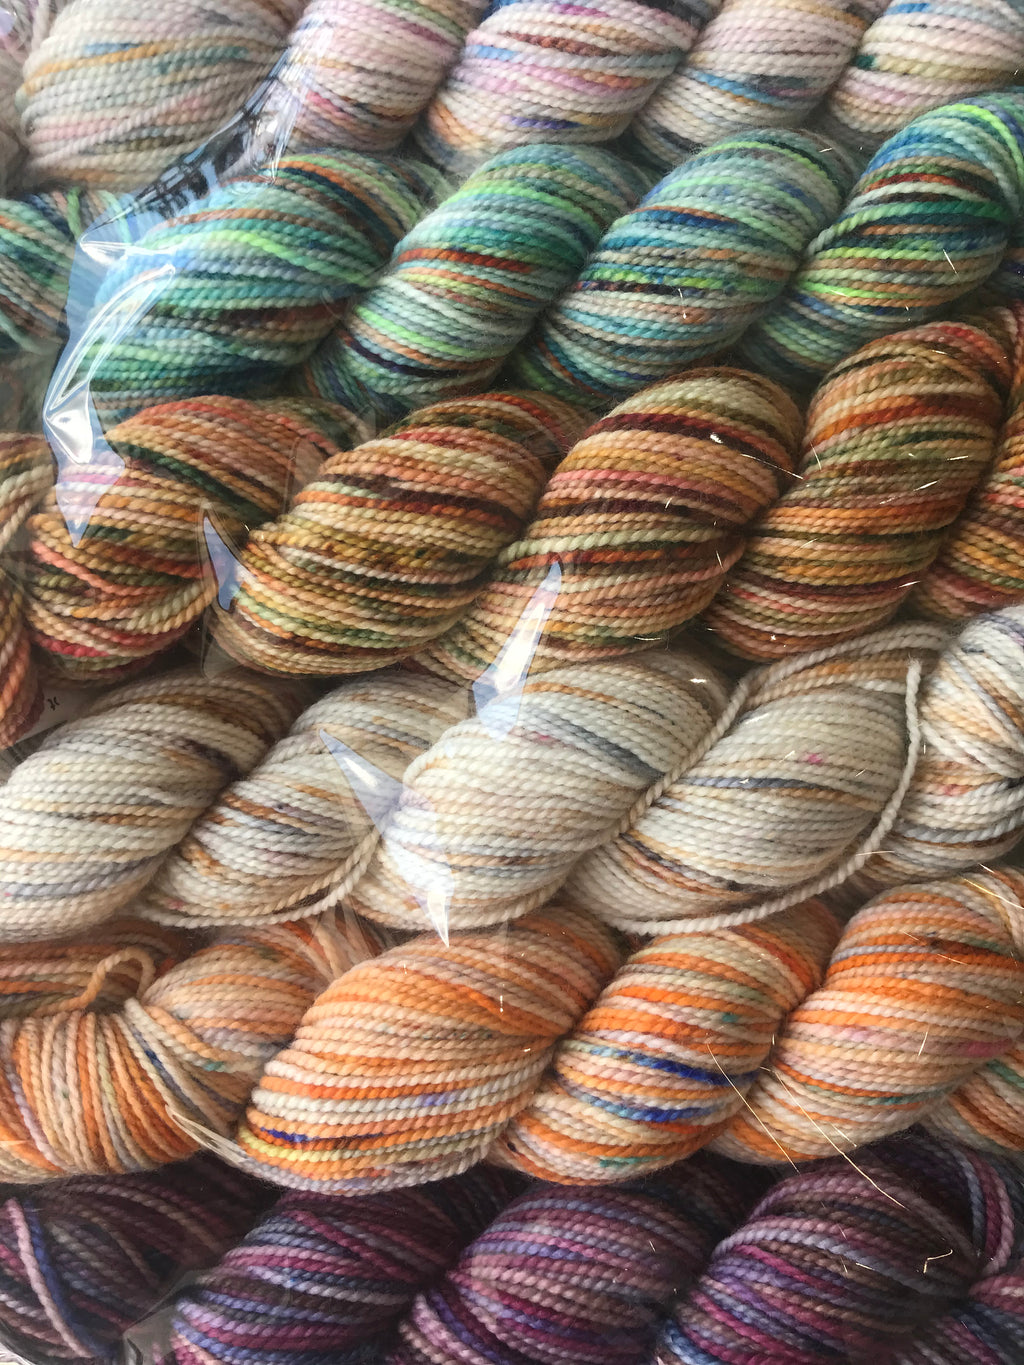 KOIGU Sets Merino Wool Yarn Kits